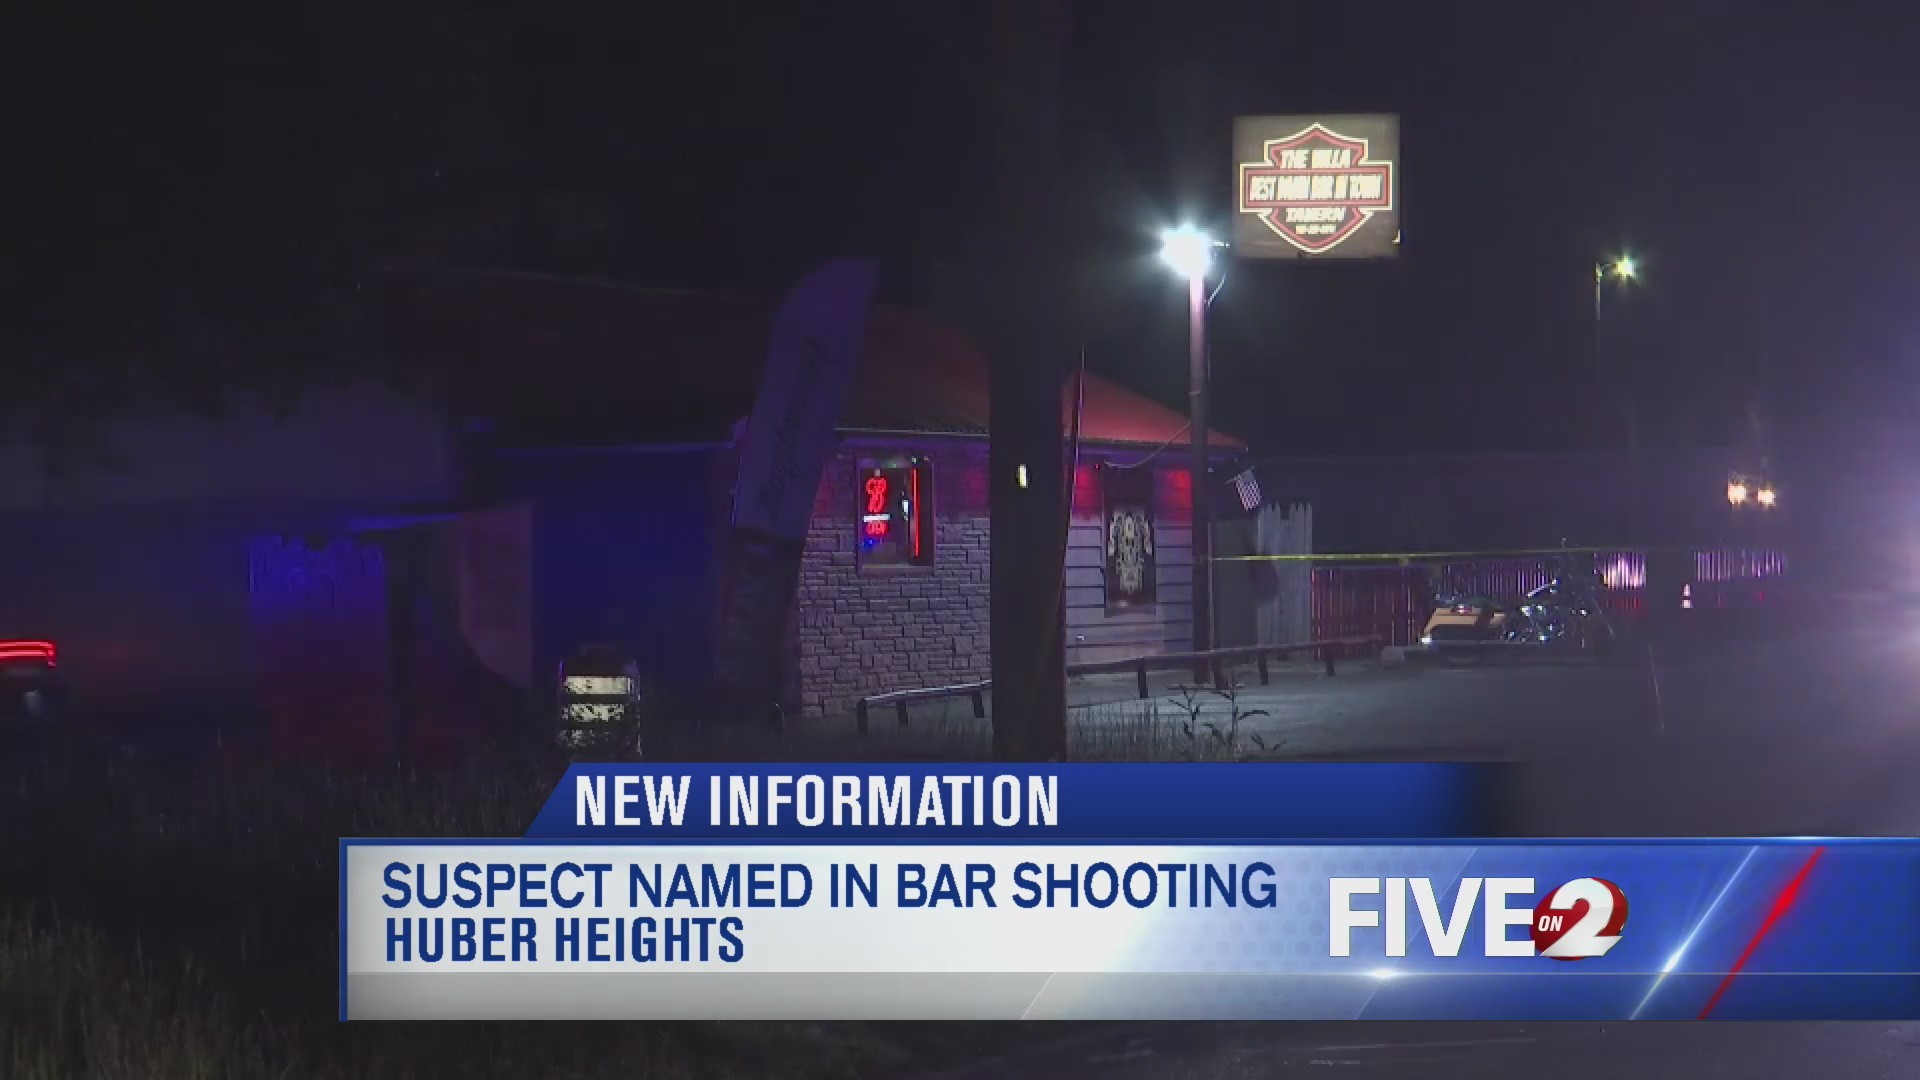 Suspect named in bar shooting